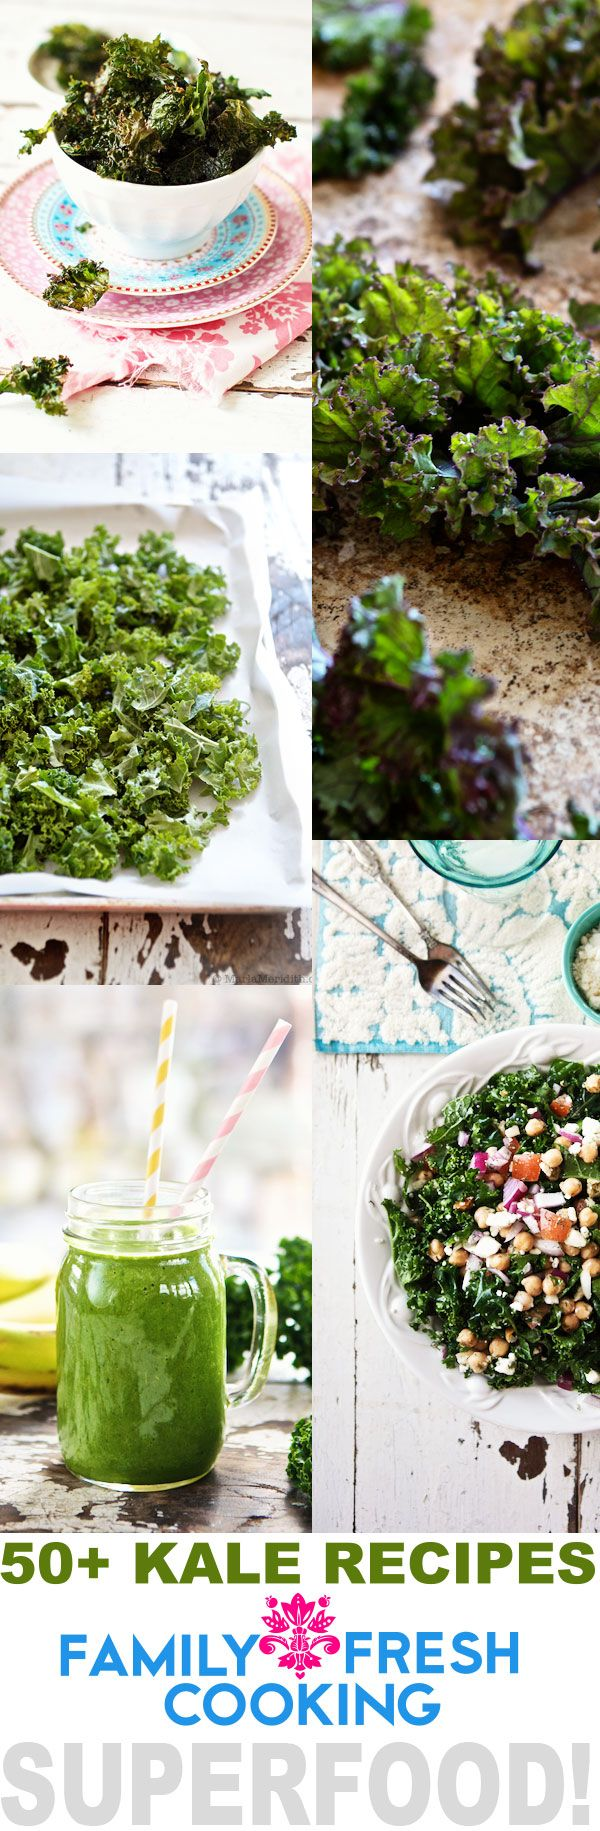 50+ AMAZING Kale Recipes | FamilyFreshCooking.com